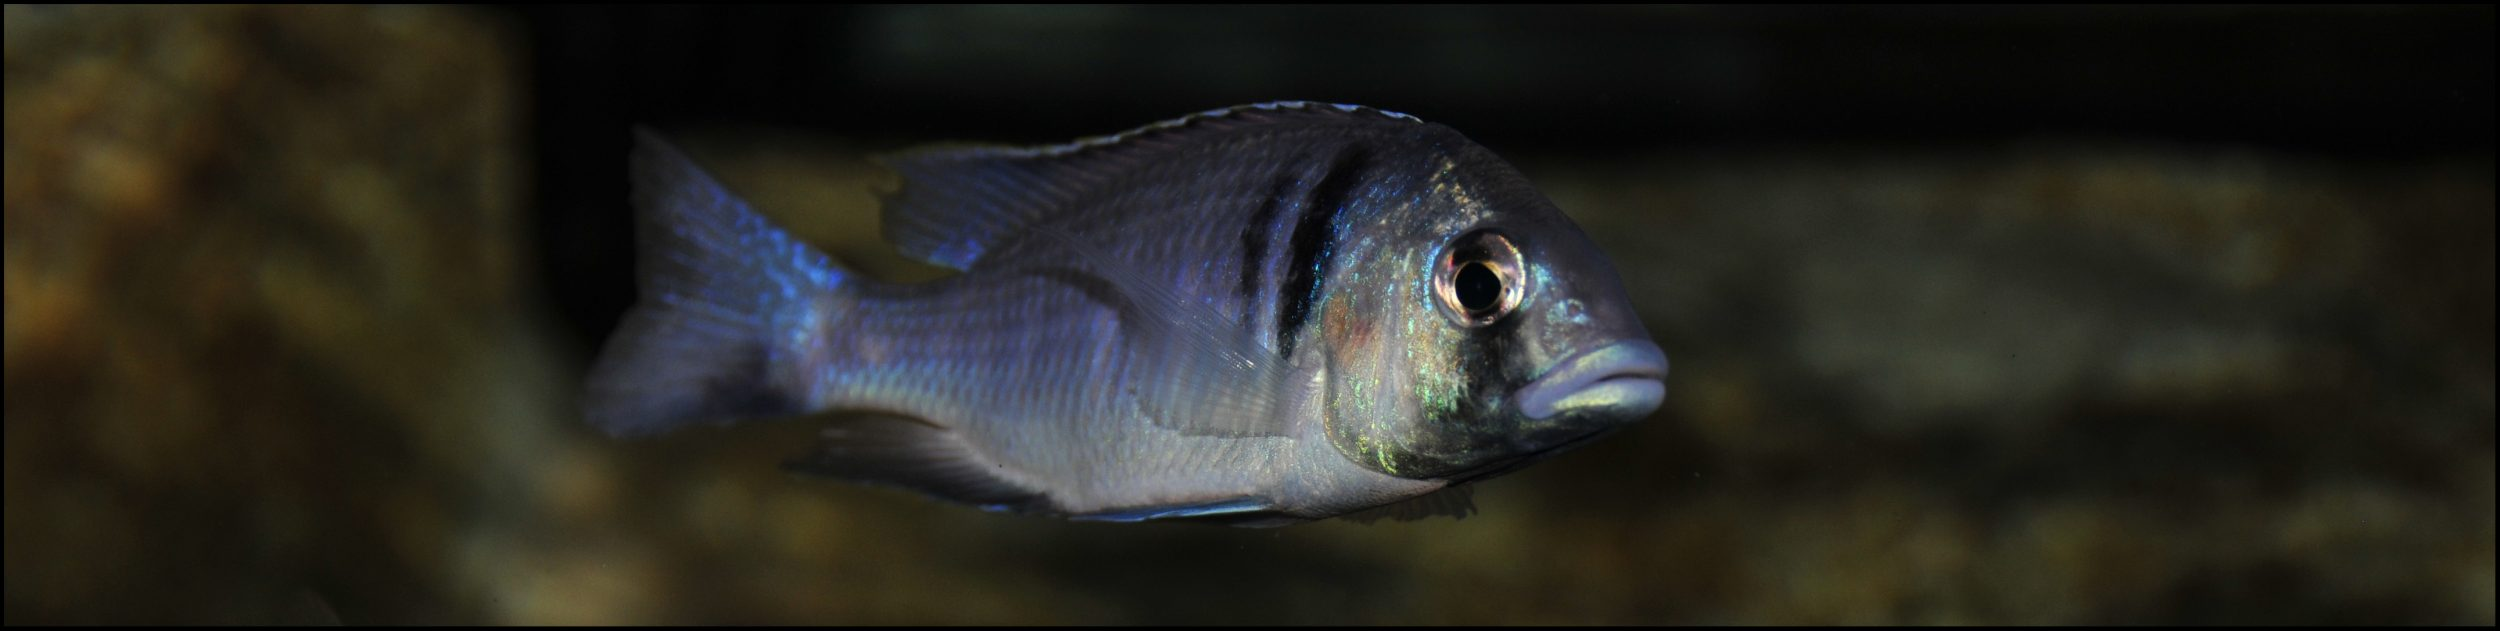 Cichlid Species